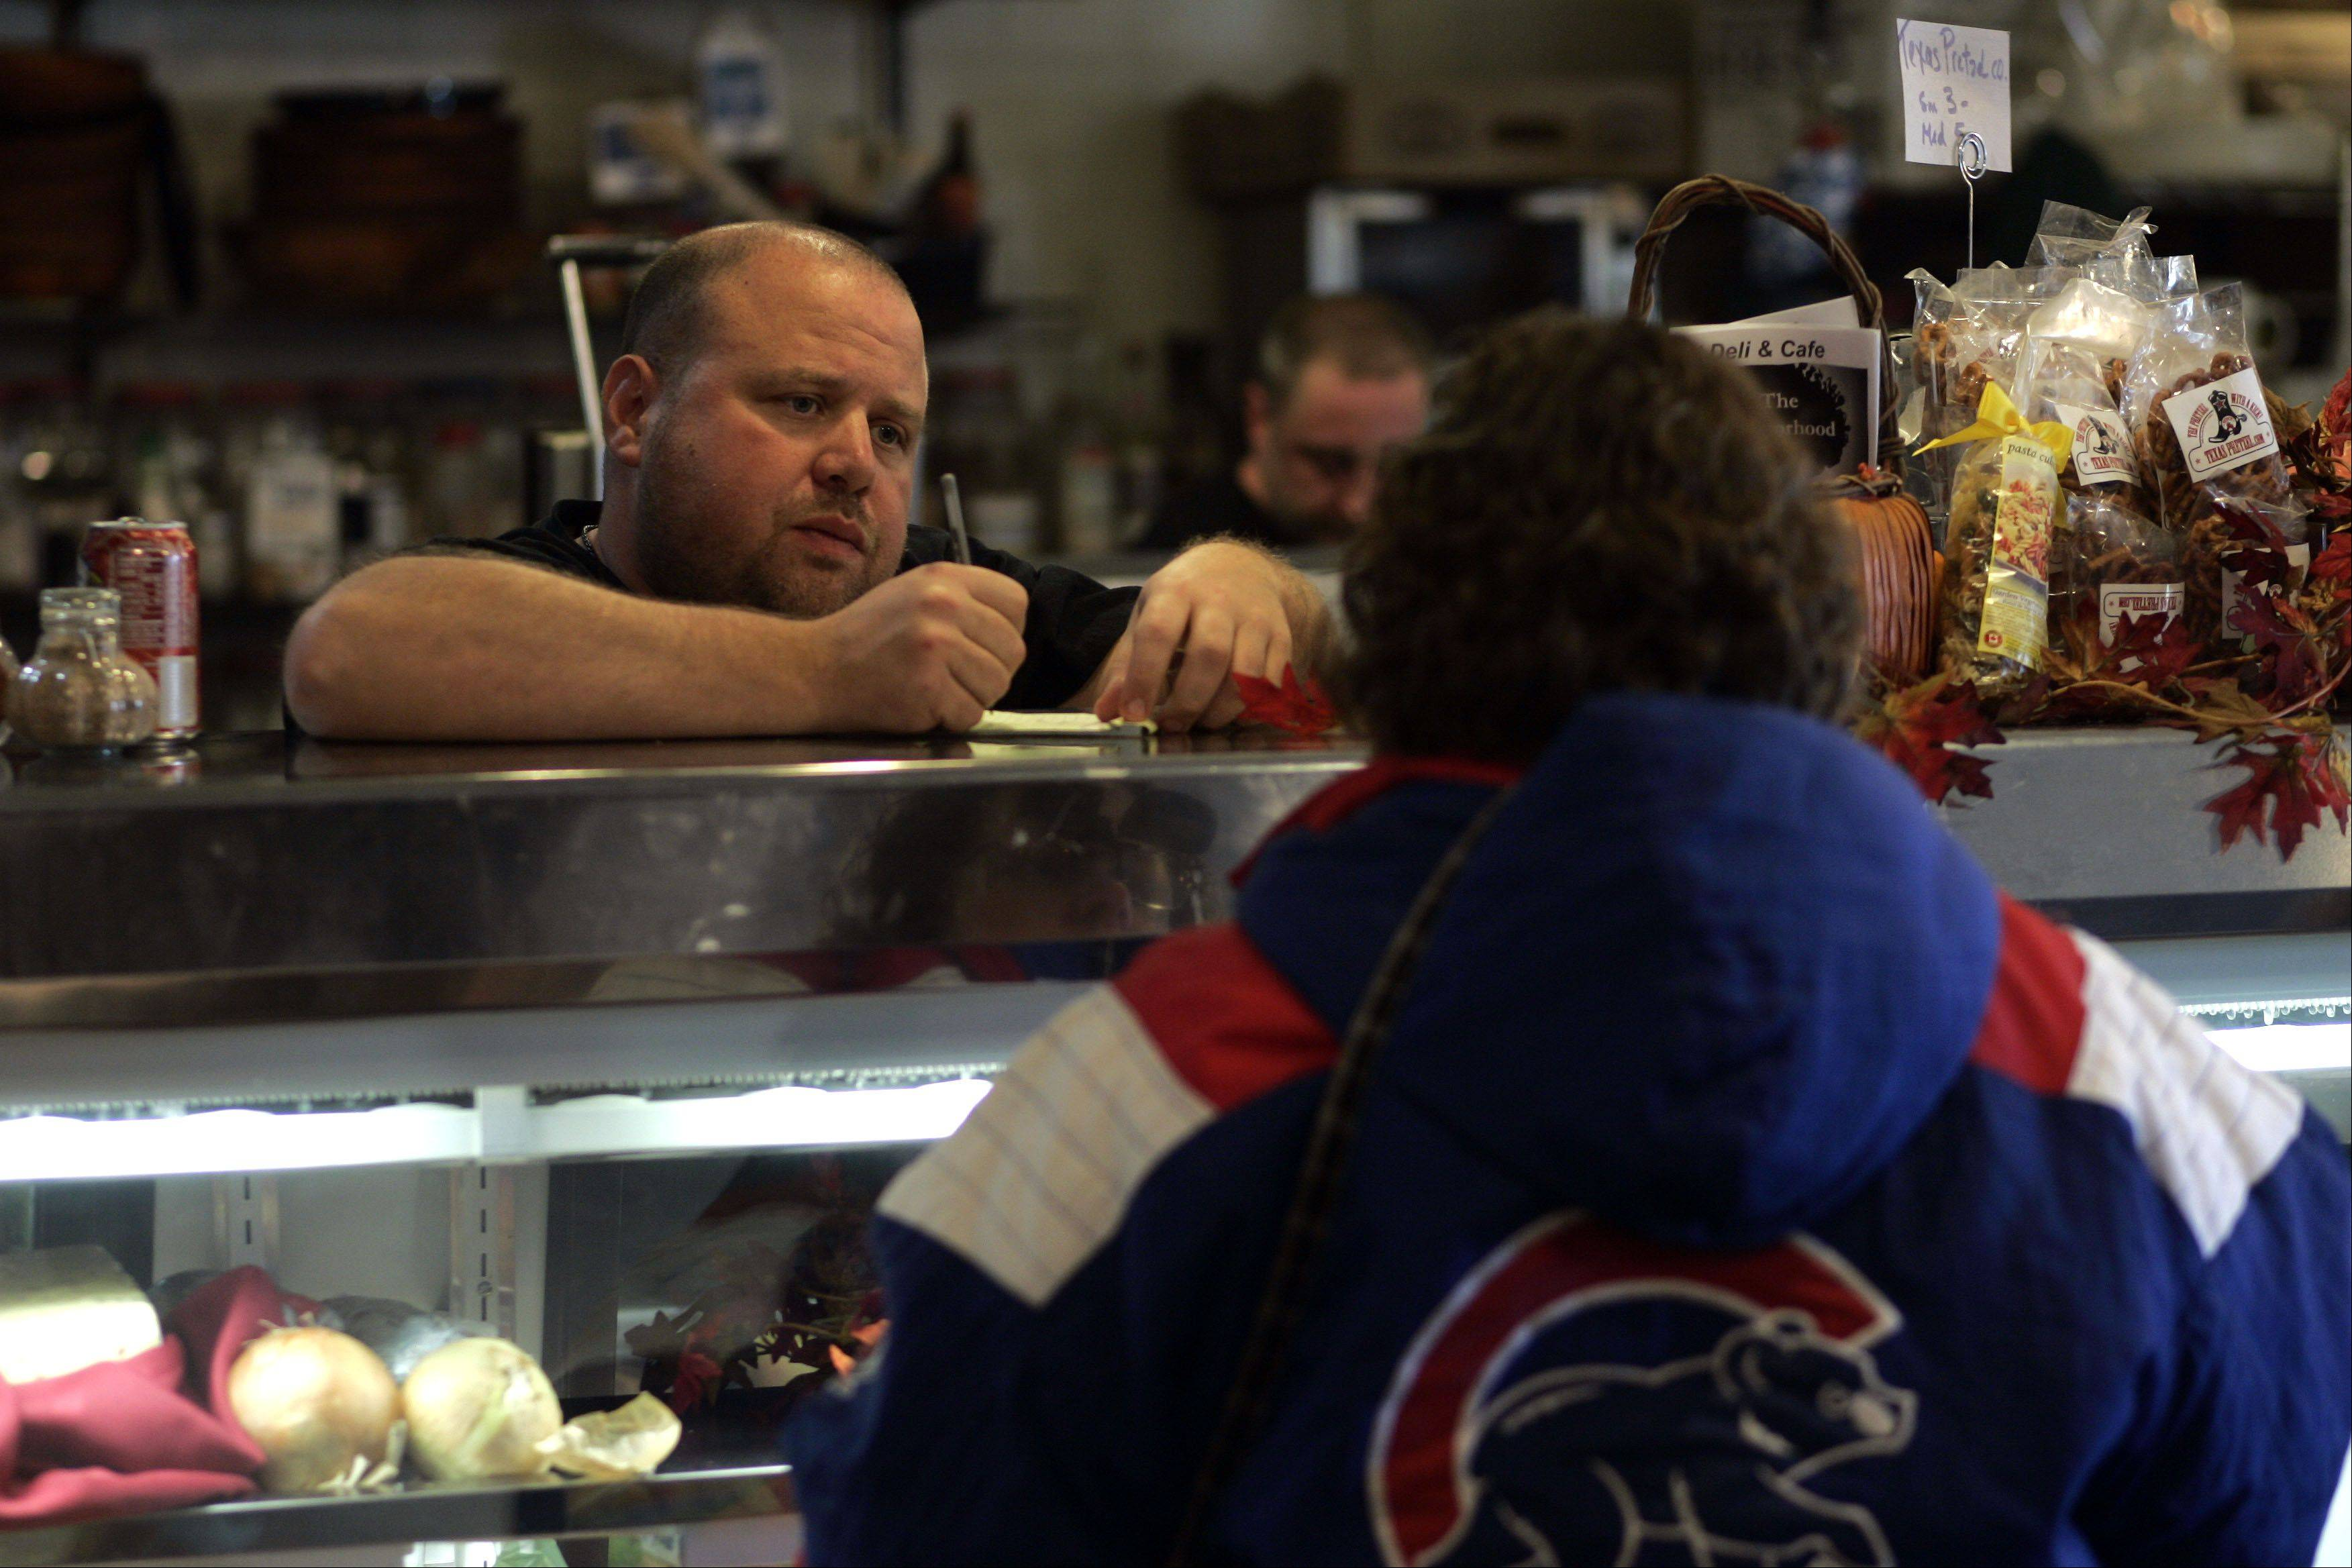 Jeff Turner of ITN Deli in Elgin takes an order for a Hemmens, a sandwich he says is one of his most popular.